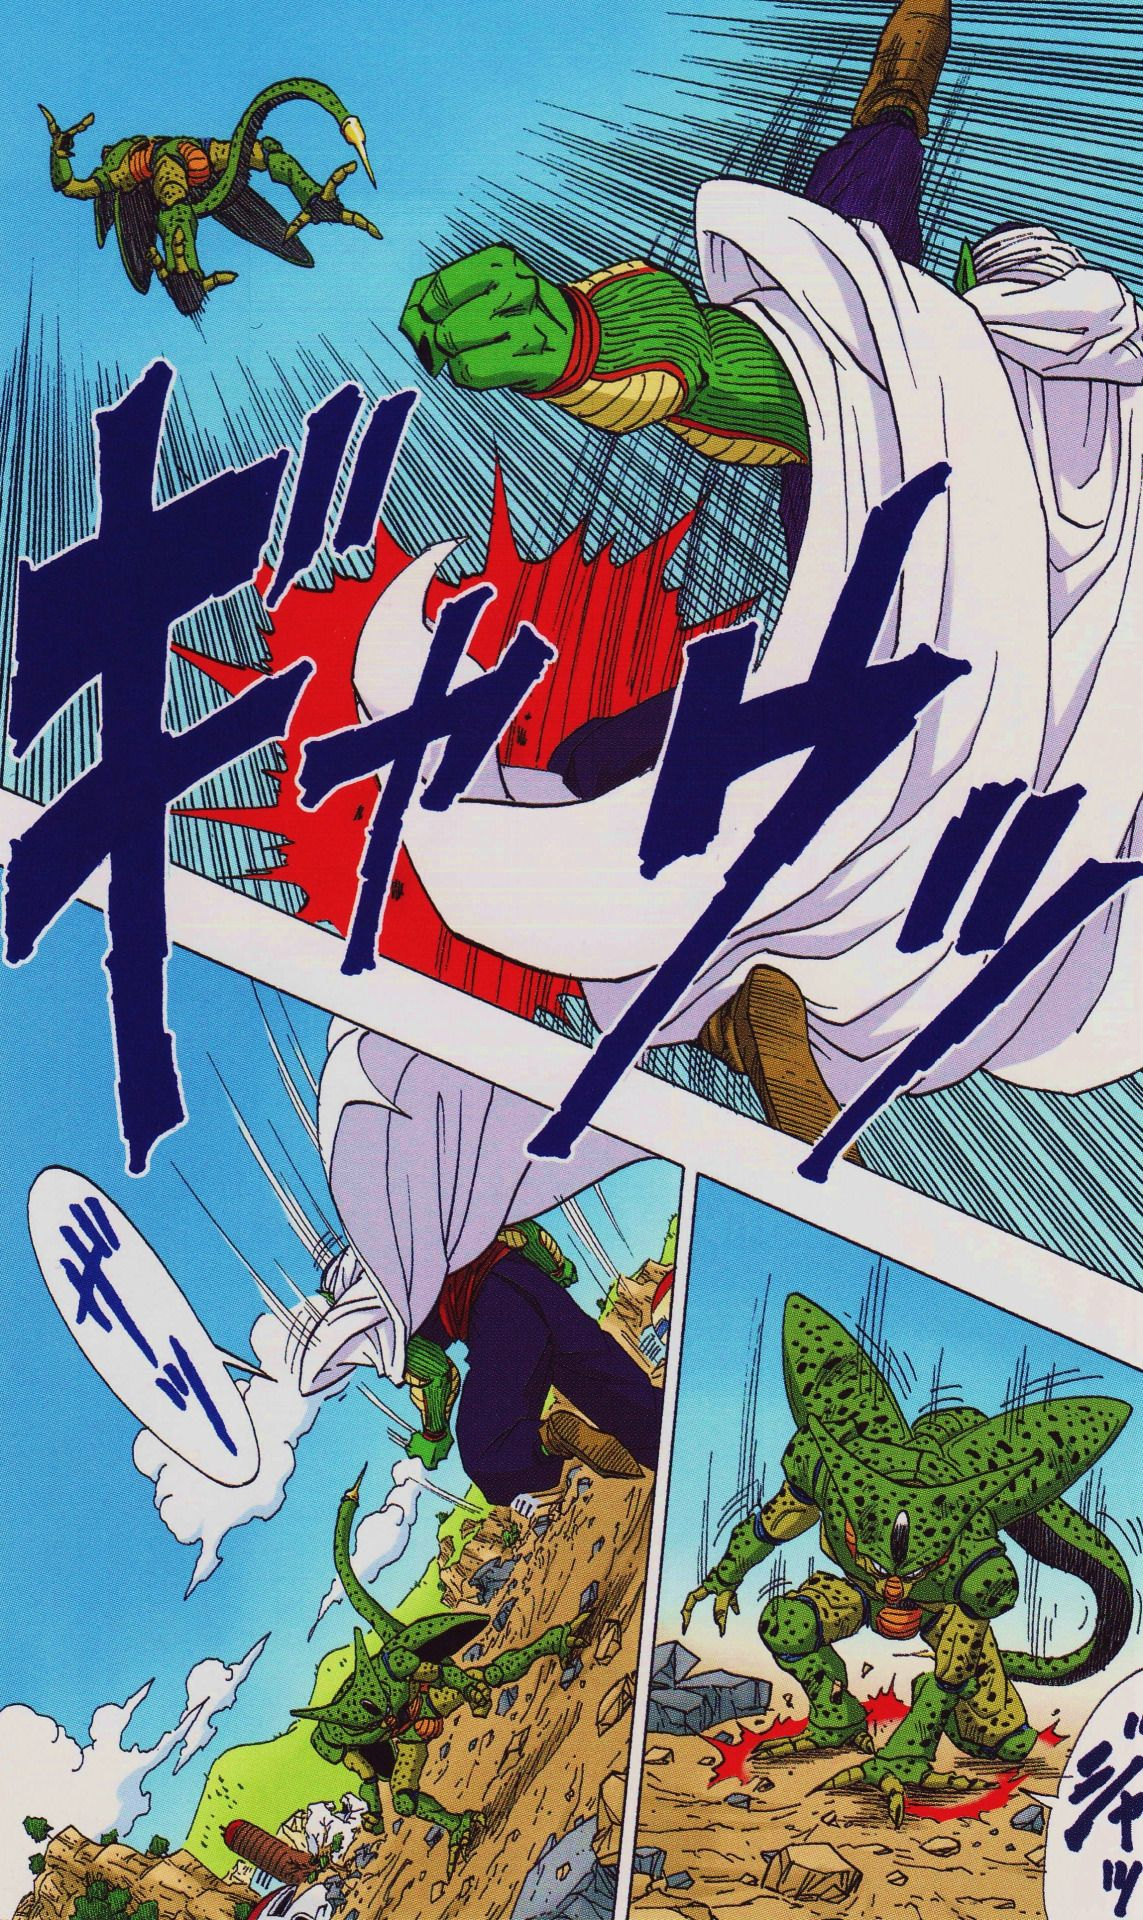 Piccolo Vs Cell First Formillustrated By Akira Toriyamapublished By Jump Comics Shueishasource Dragon Ball Manga Dragon Ball Dragon Ball Gt